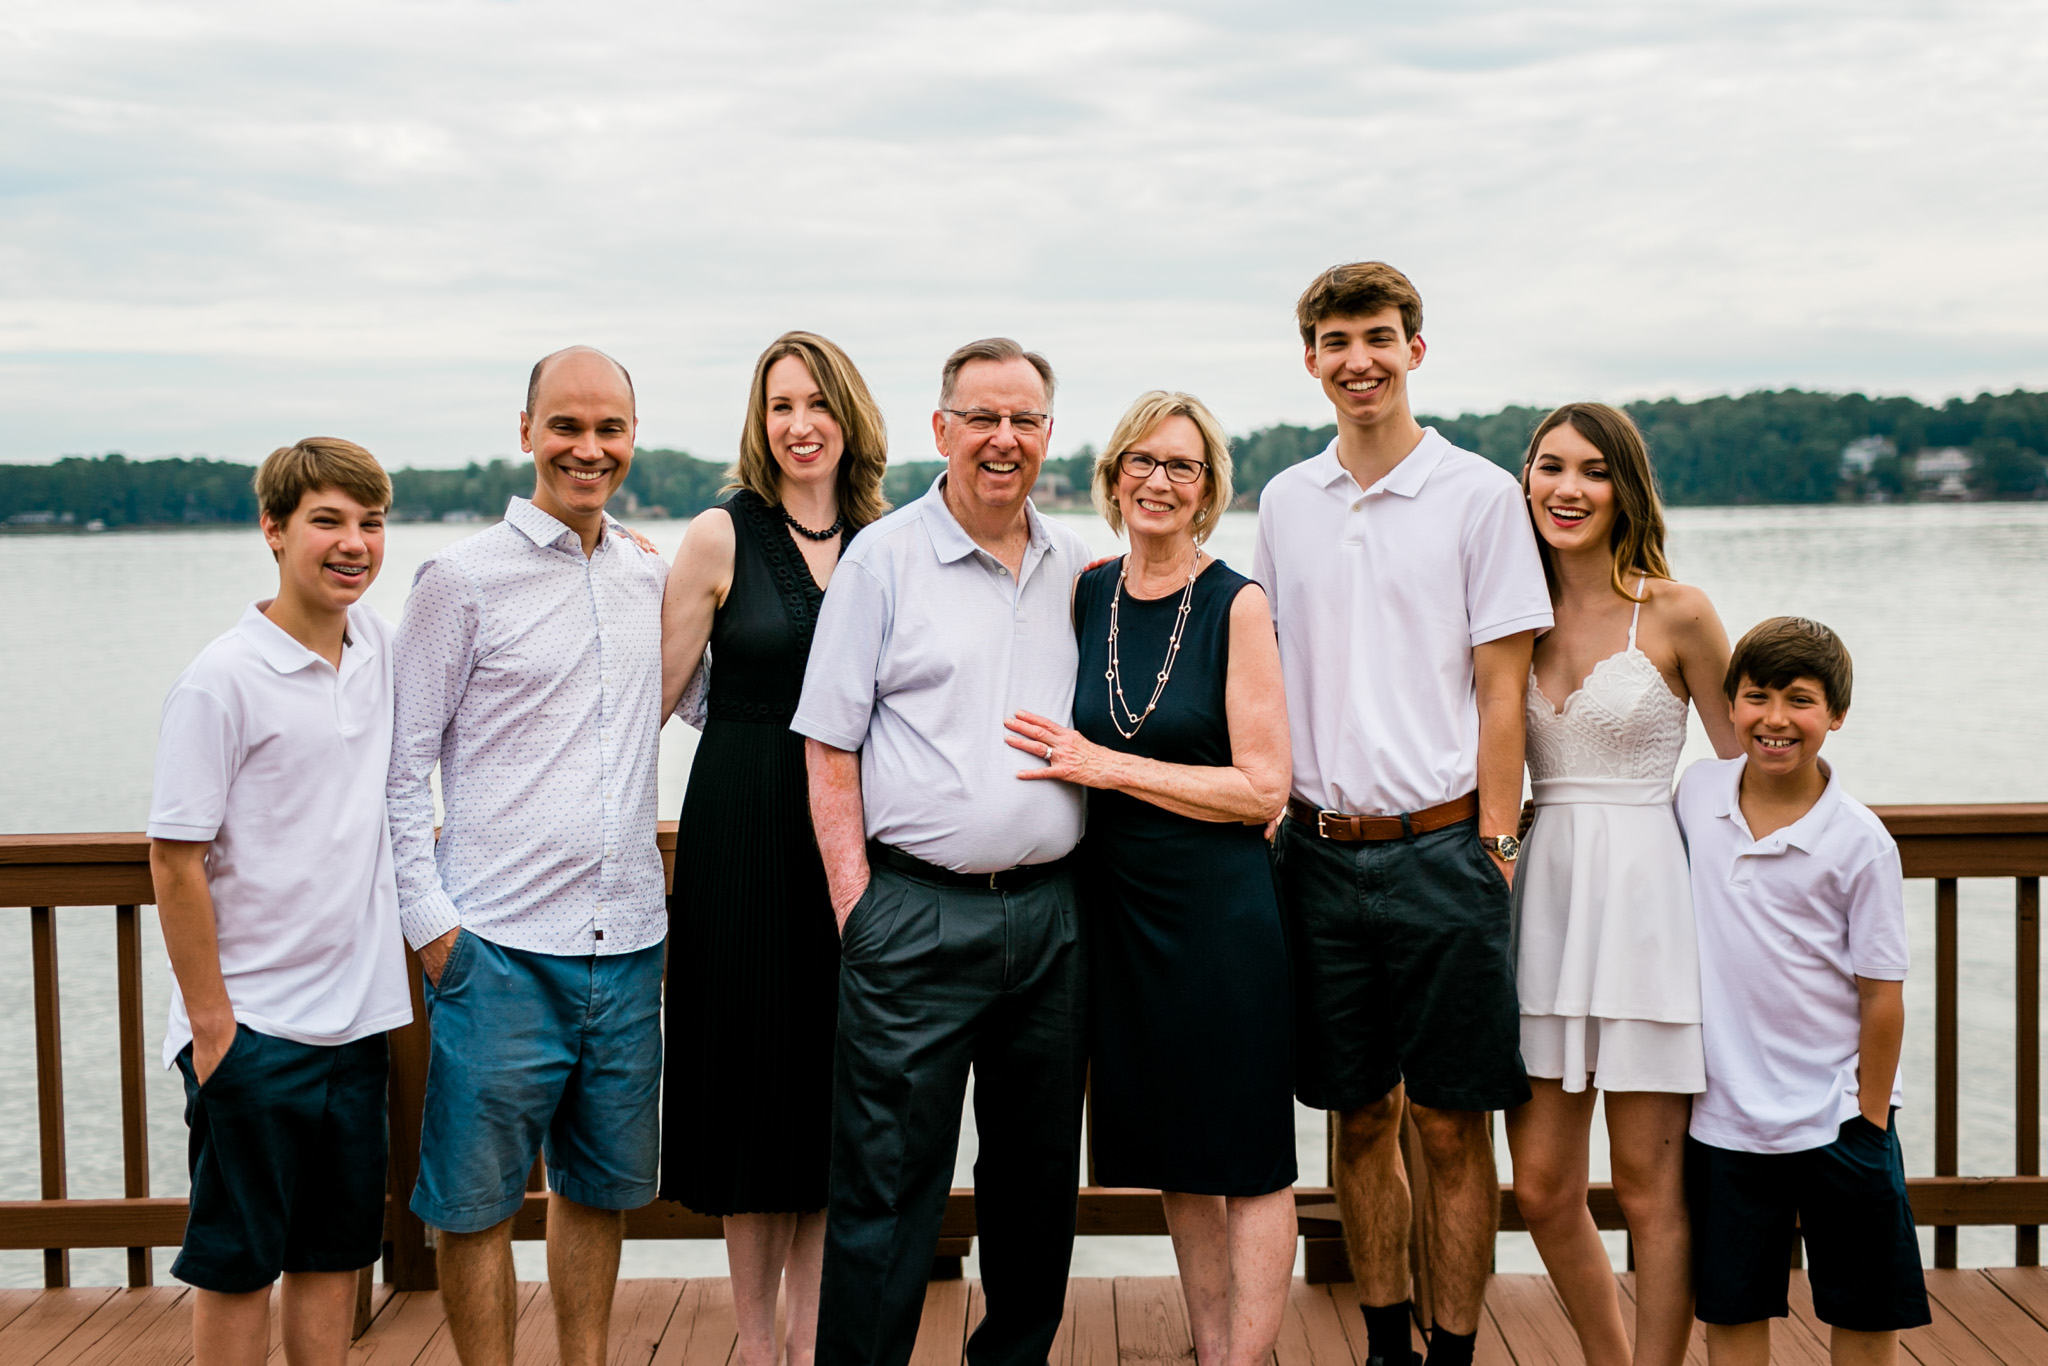 Outdoor family portrait on dock | Durham Family Photographer | By G. Lin Photography